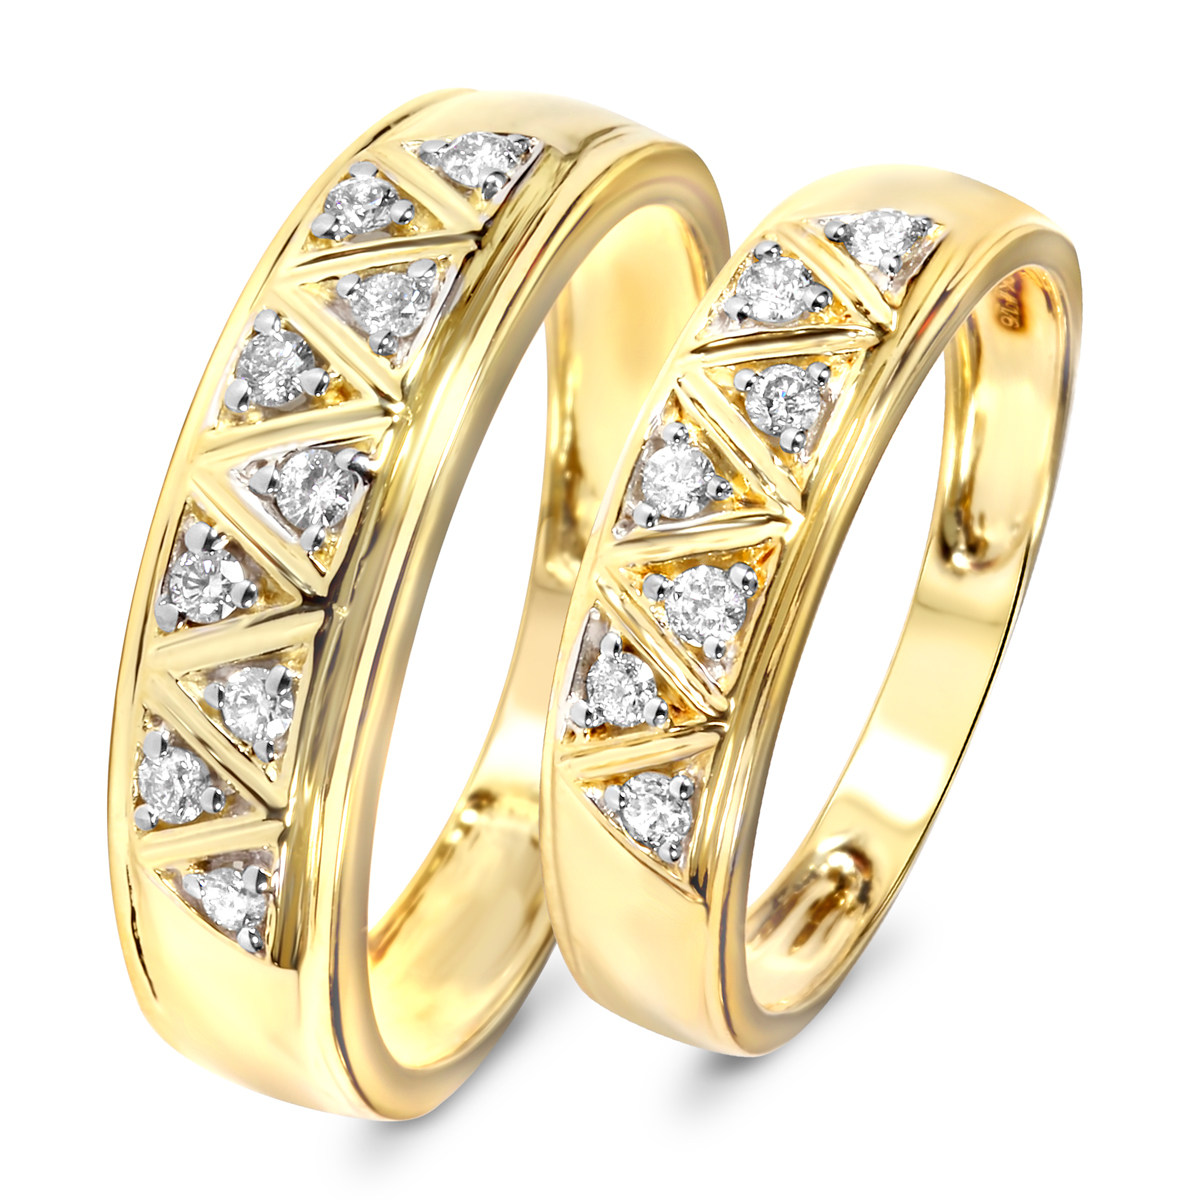 13 carat tw diamond his and hers wedding band set 10k yellow gold junglespirit Image collections